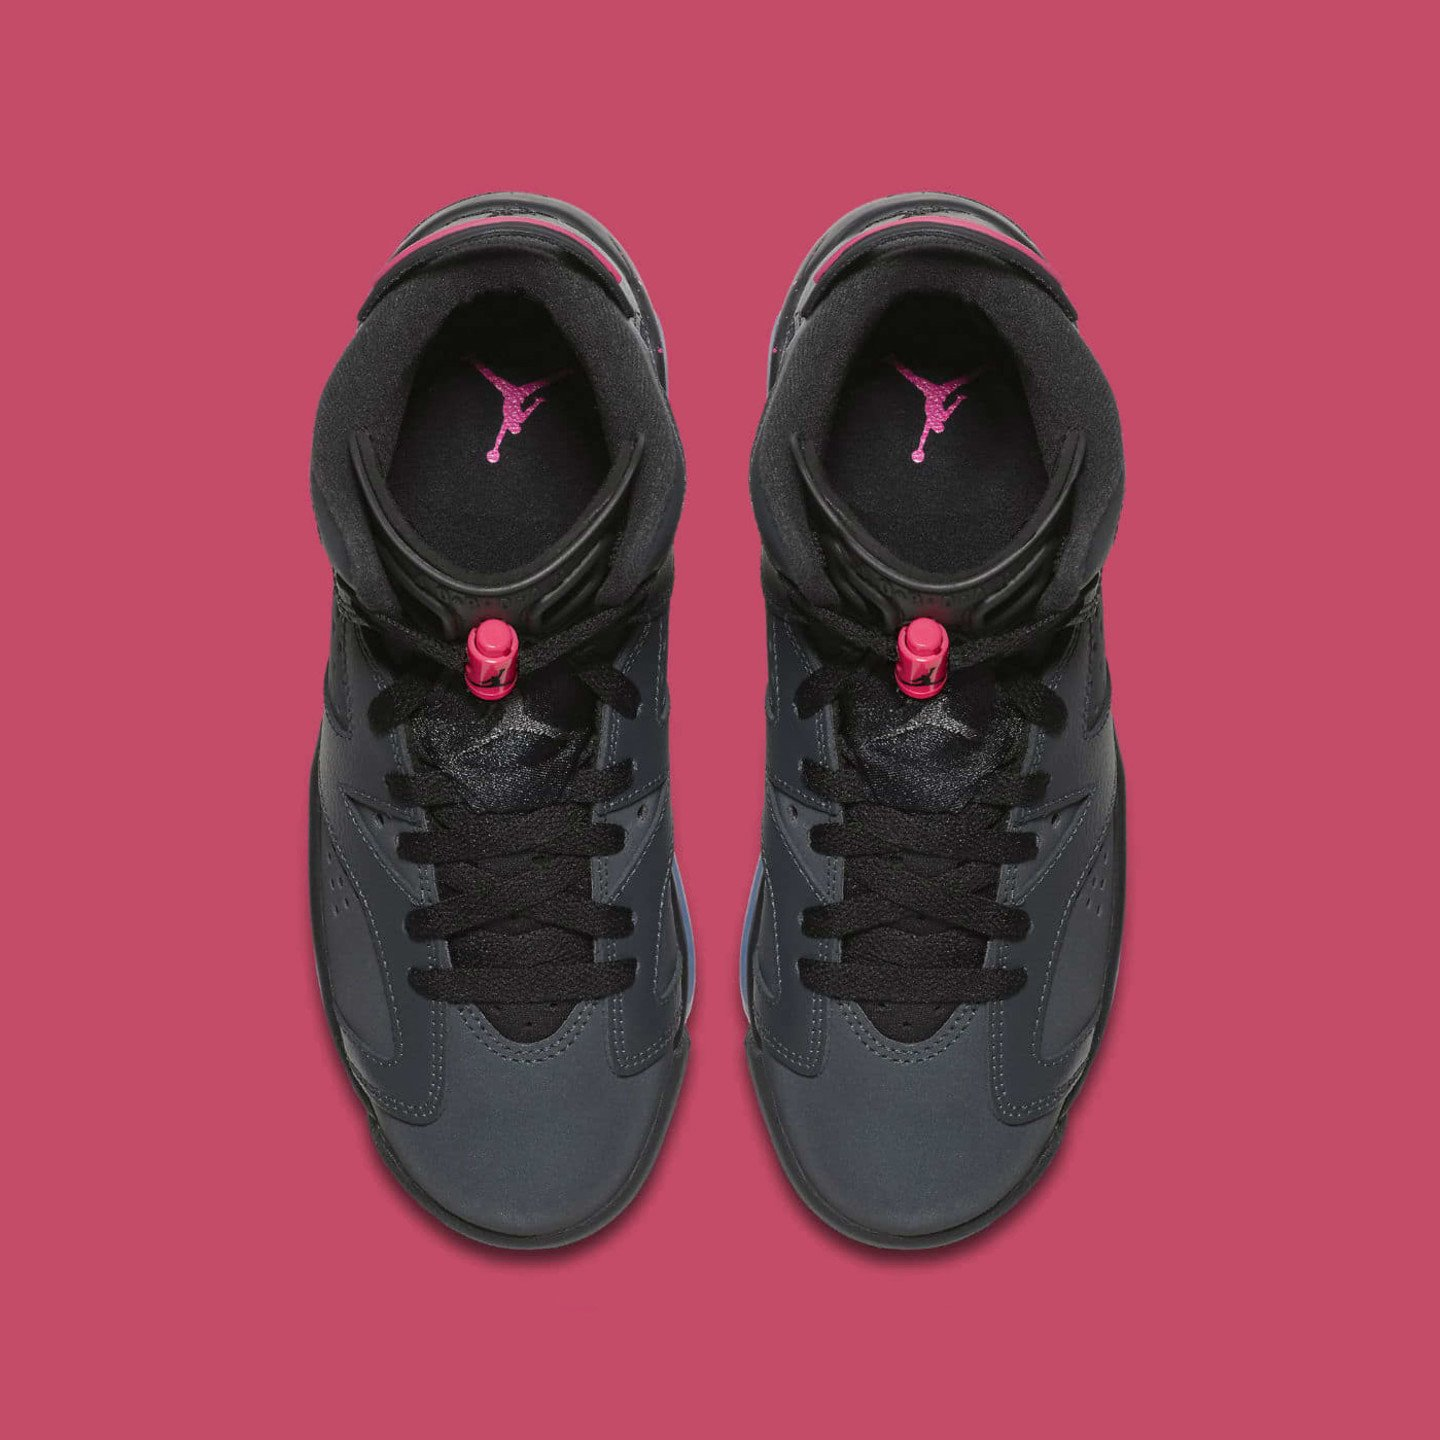 Nike Air Jordan 6 Retro GS Anthracite / Black / Hyper Pink 543390-008-37.5